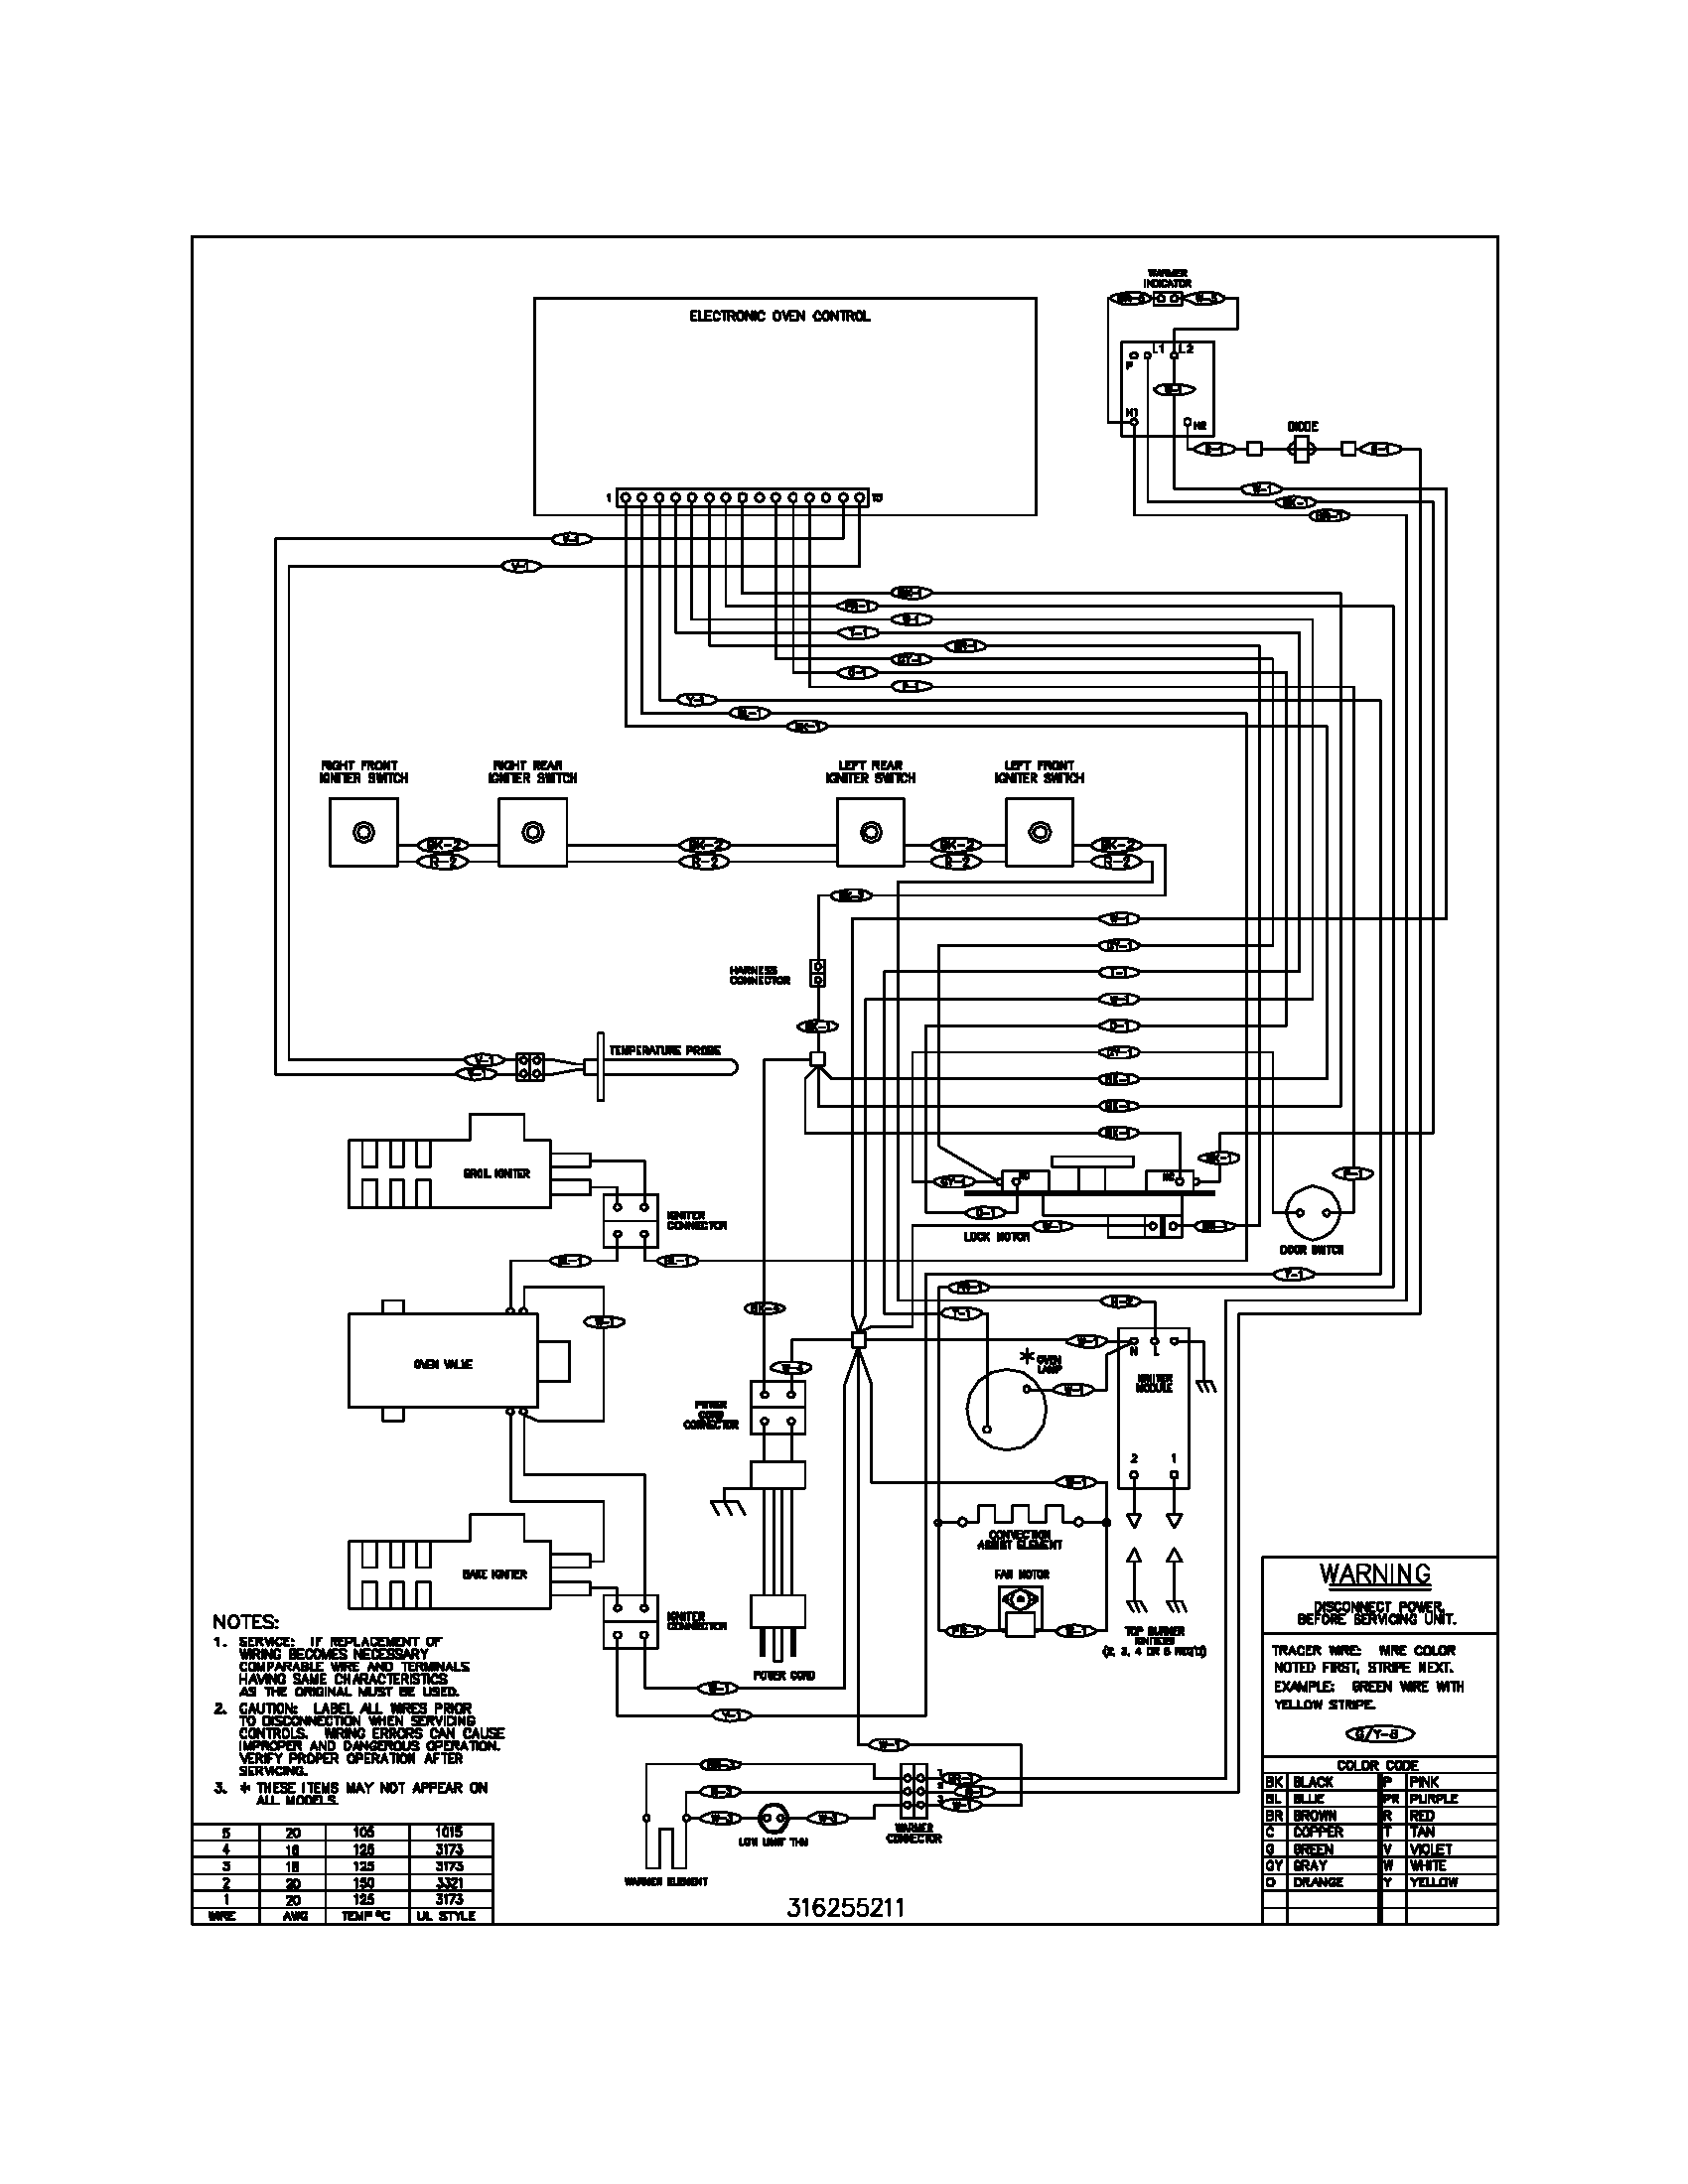 wiring diagram parts frigidaire plgf389ccc gas range timer stove clocks and appliance frigidaire freezer wiring diagram at edmiracle.co